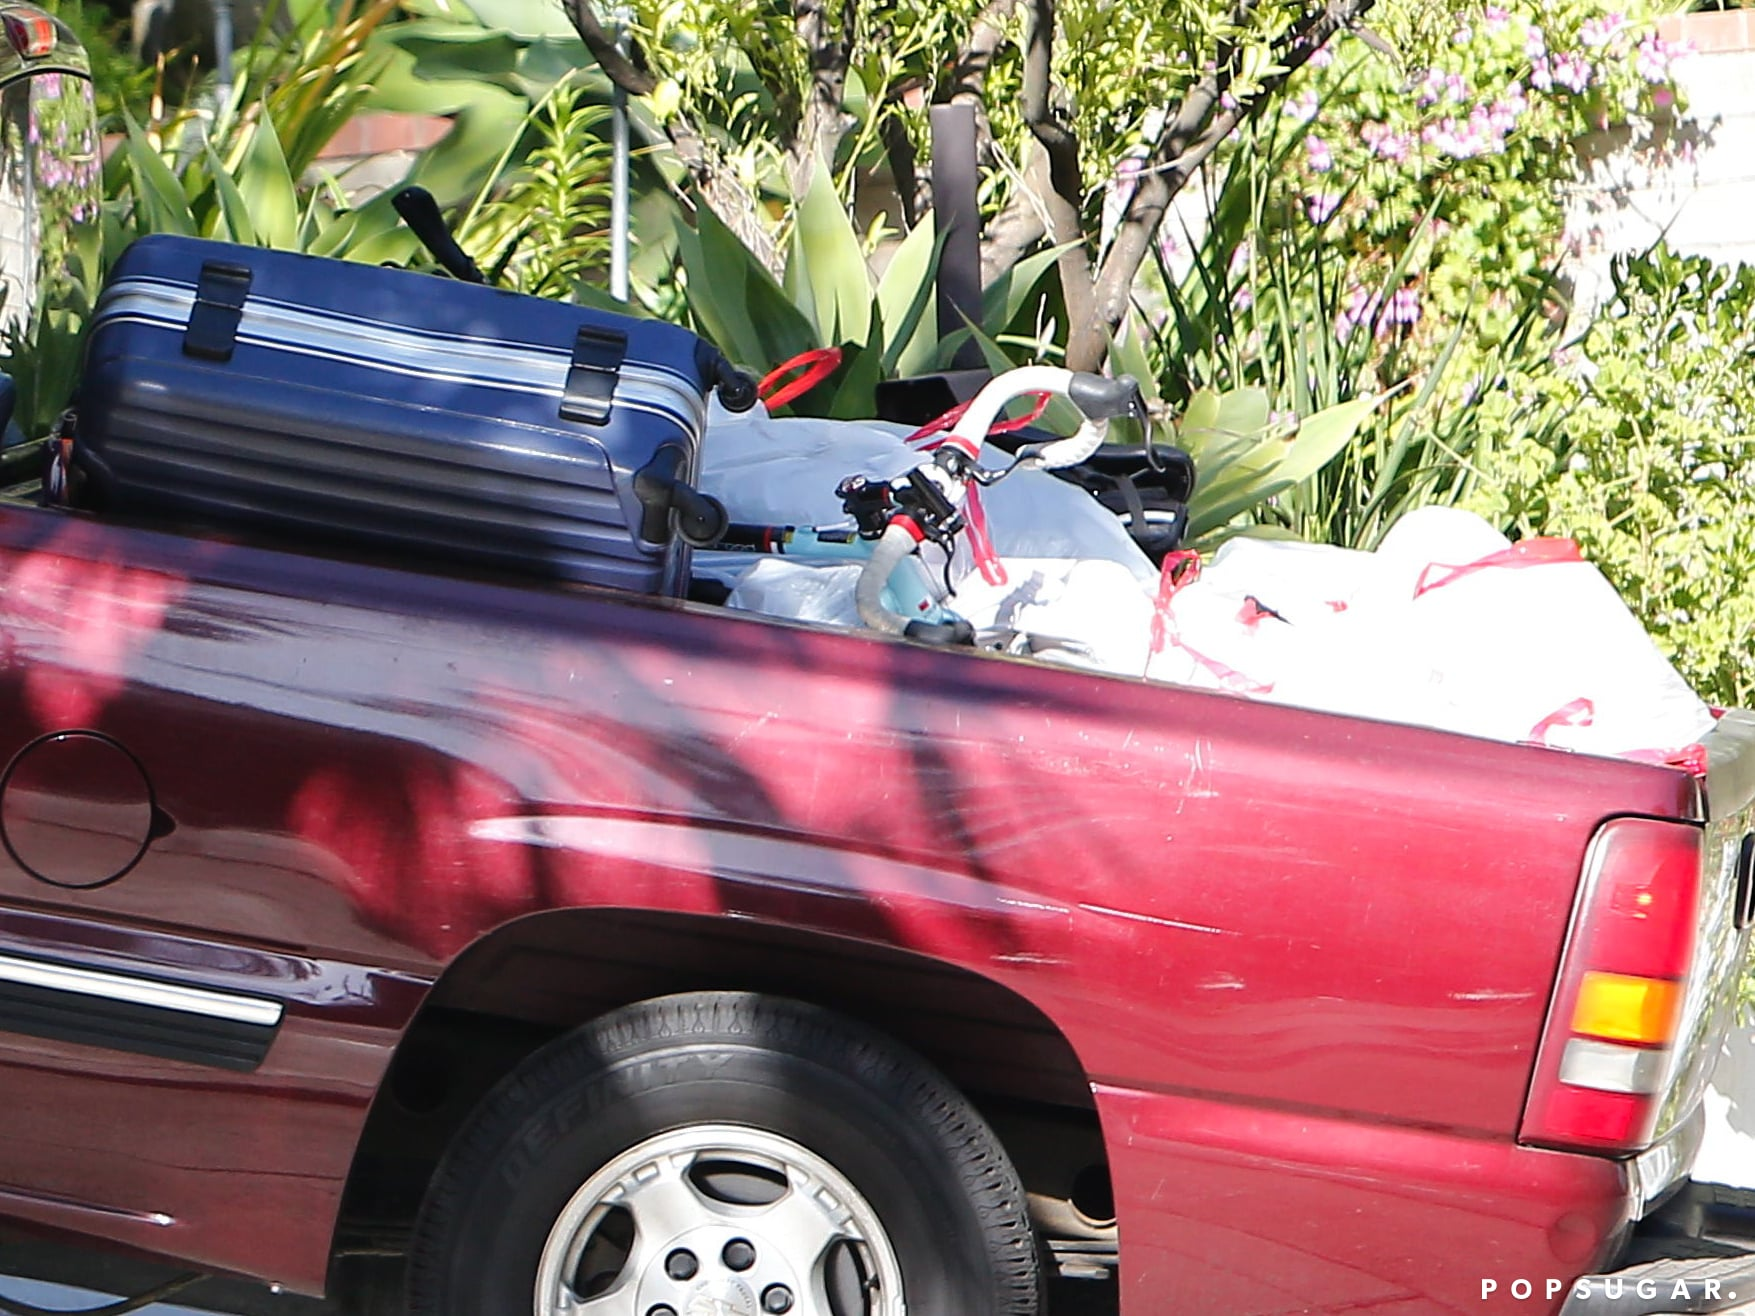 Robert Pattinson had a suitcase and several trash bags in his truck.